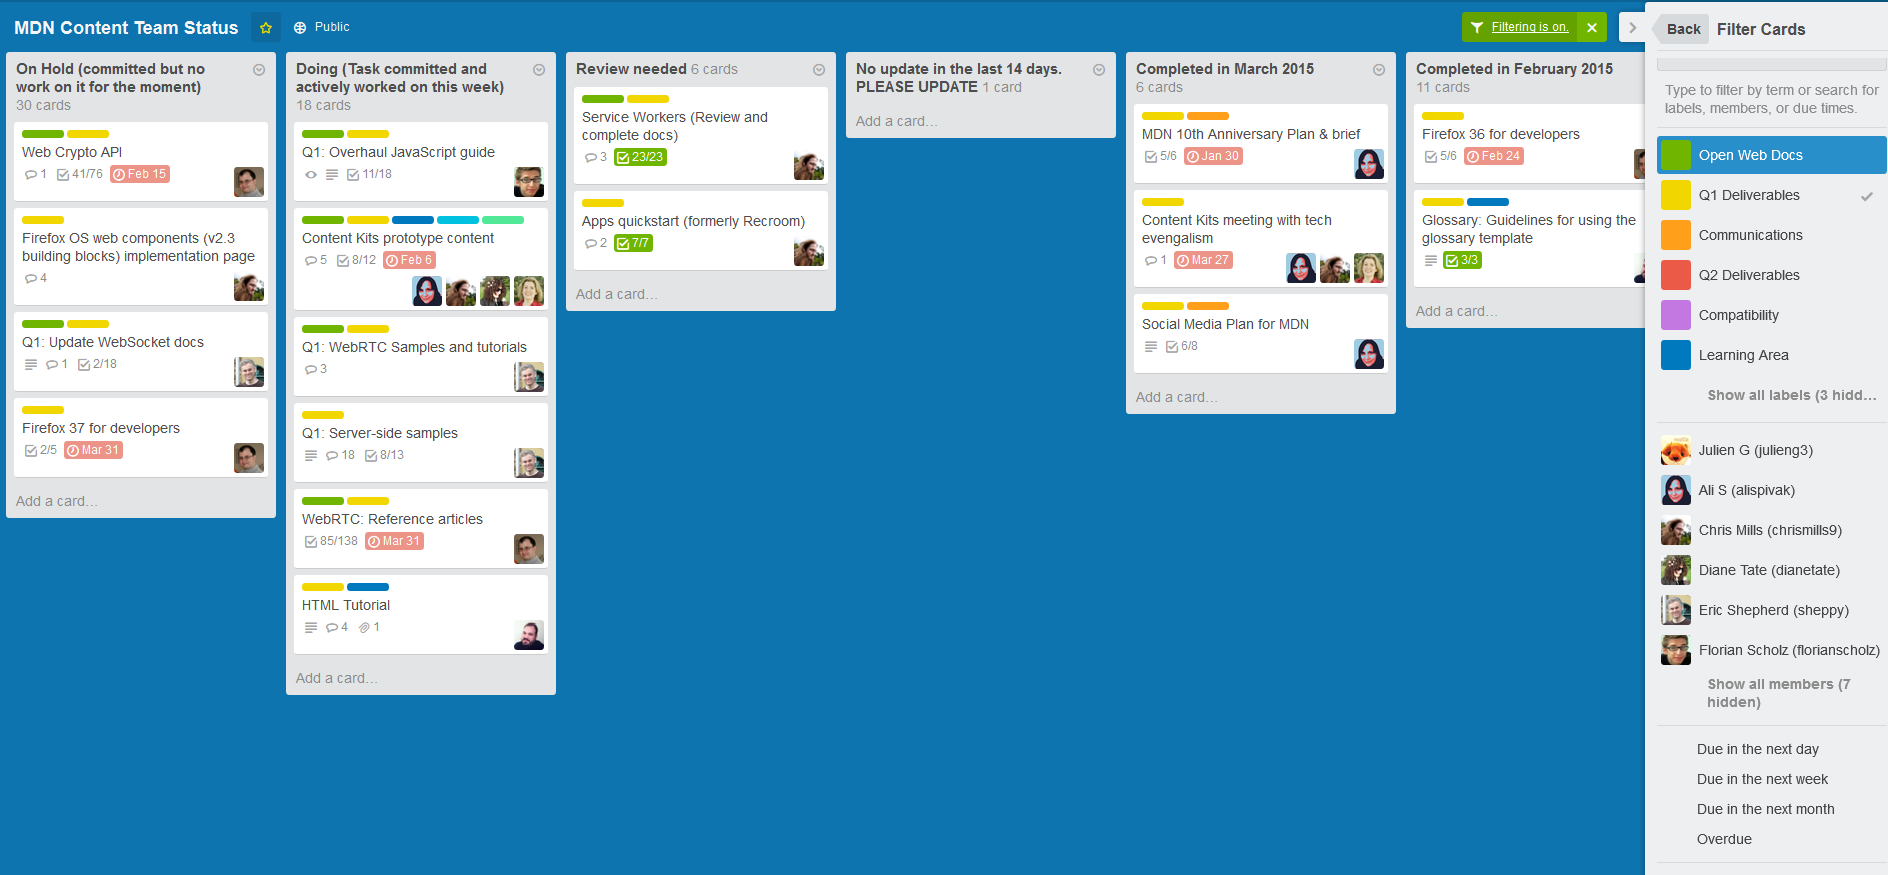 Trello boards are great for project management